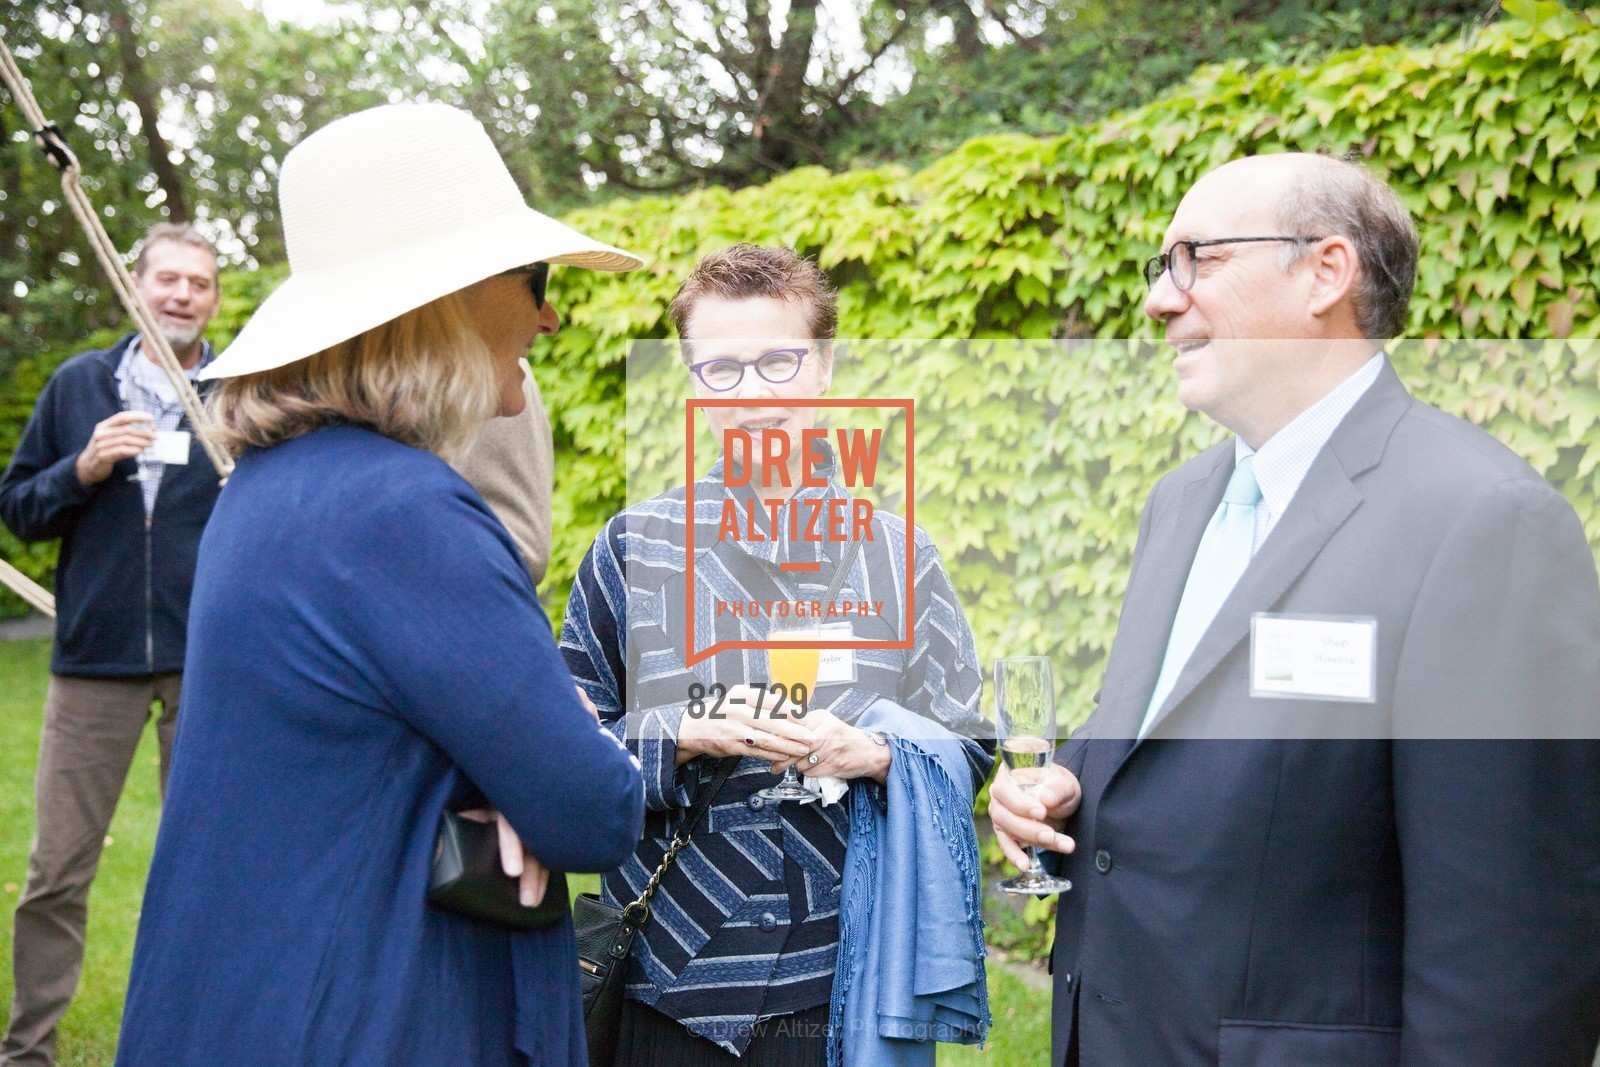 Kathleen Taylor, Shep Harris, THE TRUST FOR PUBLIC LAND Luncheon Hosted by THE DREVER FAMILY FOUNDATION, US, May 15th, 2015,Drew Altizer, Drew Altizer Photography, full-service agency, private events, San Francisco photographer, photographer california